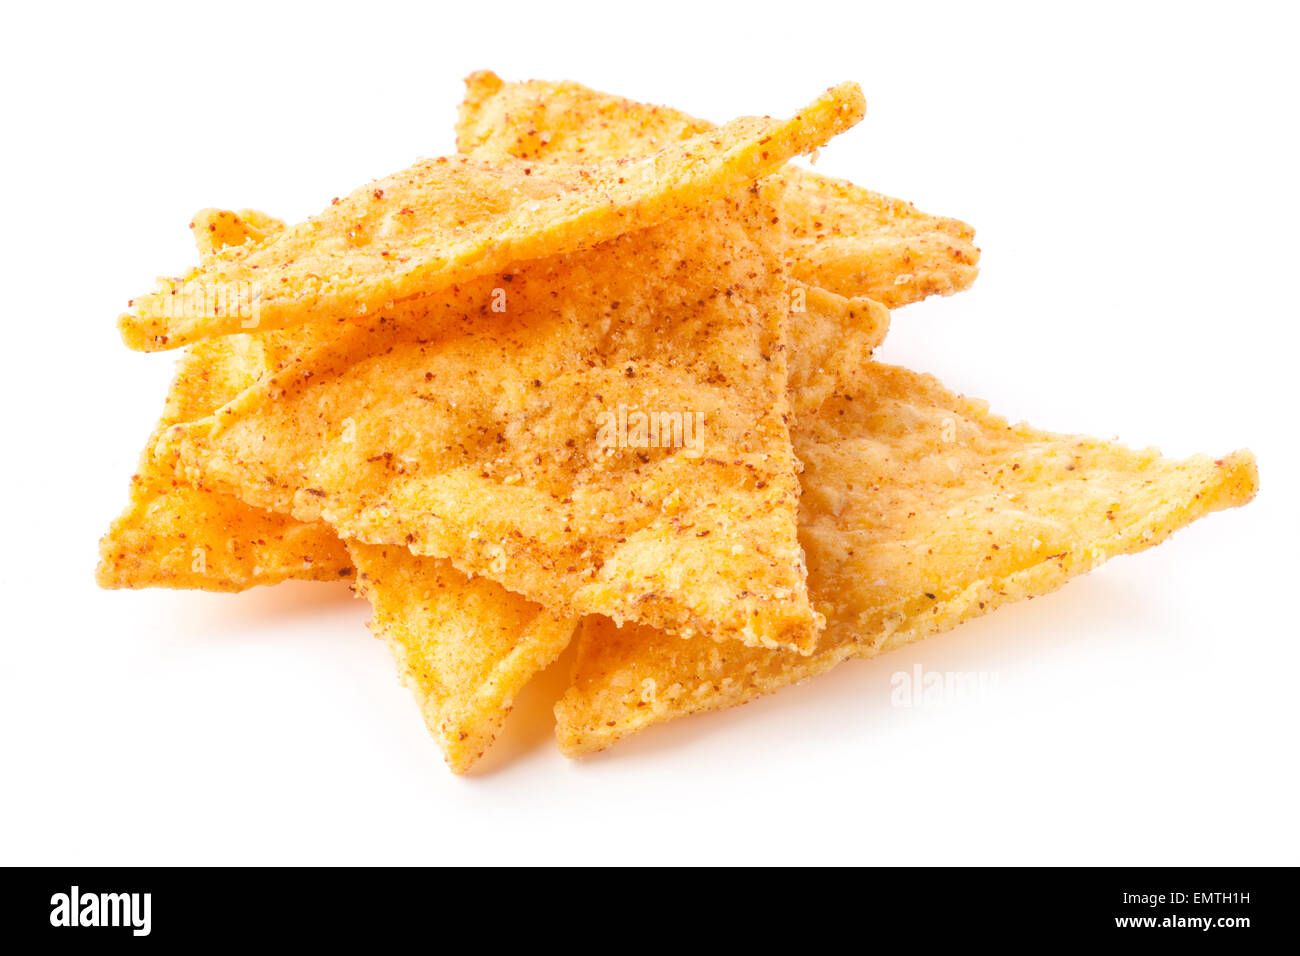 Corn chips with pepper isolated on white - Stock Image